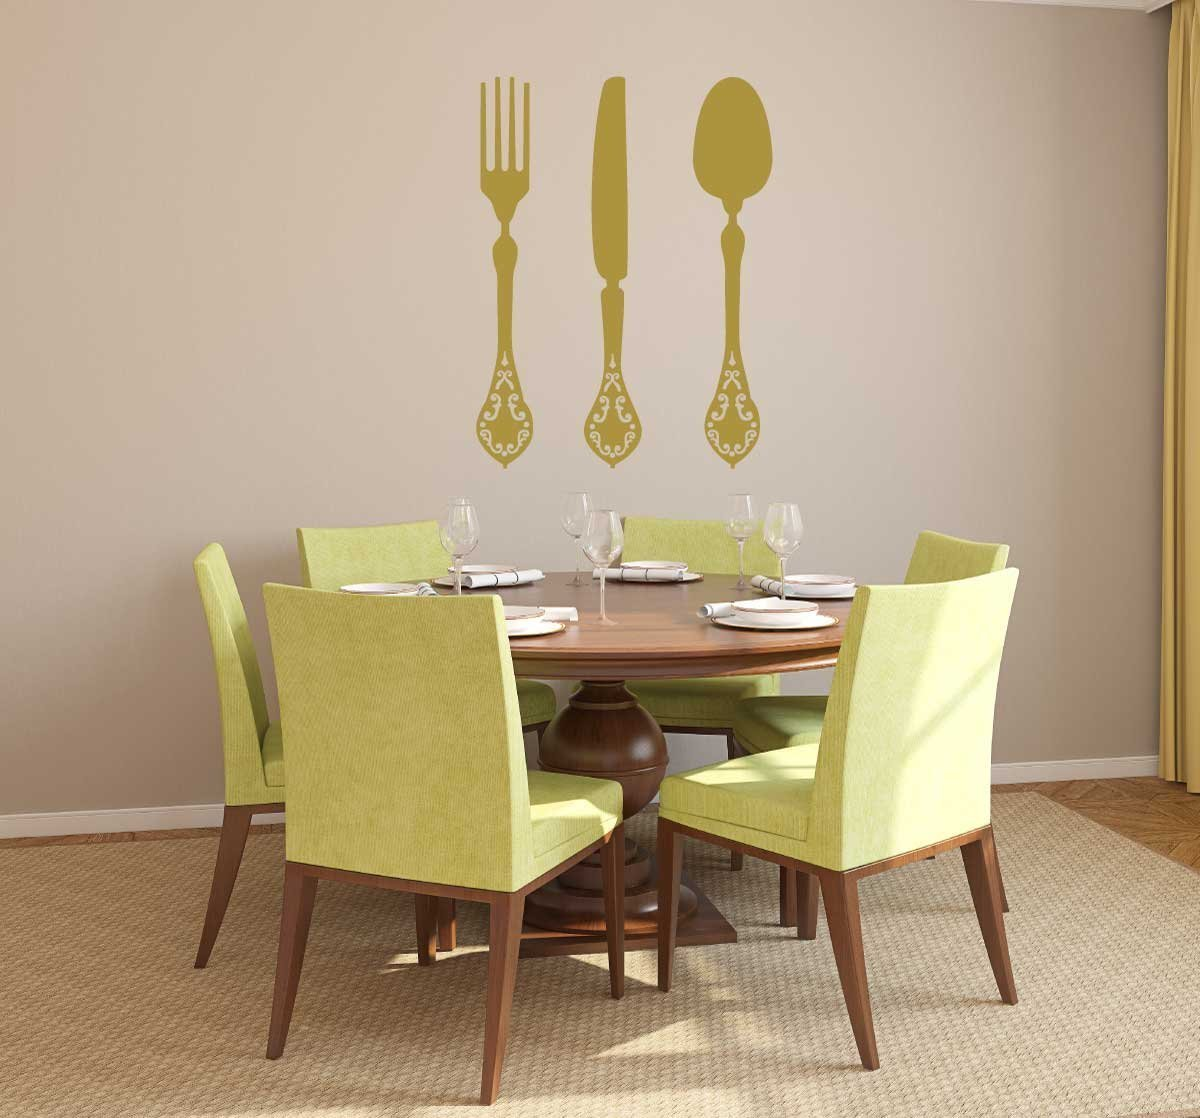 Amazon.com: Kitchen Wall Decals, Fork Knife and Spoon, Dining Room ...